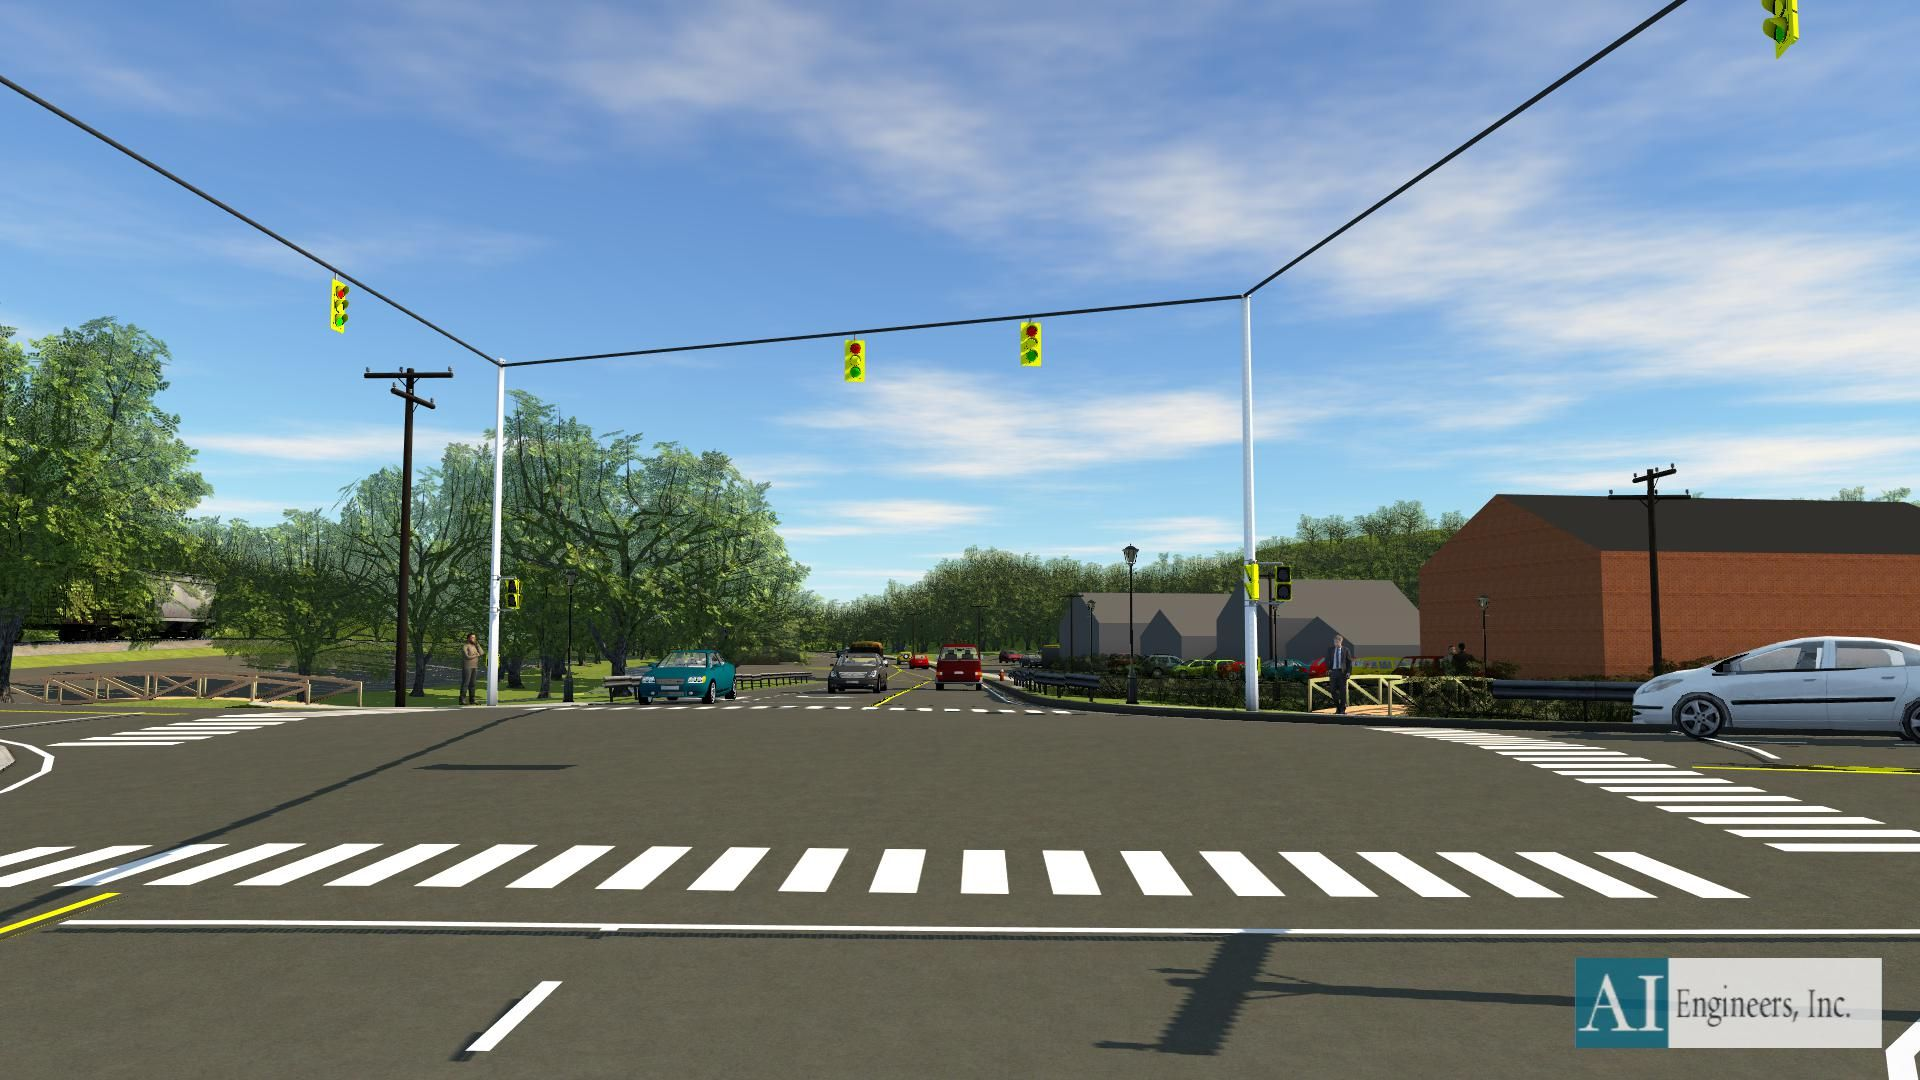 2575-ridgefield-ct-intersection-driver-pov-3500-3500